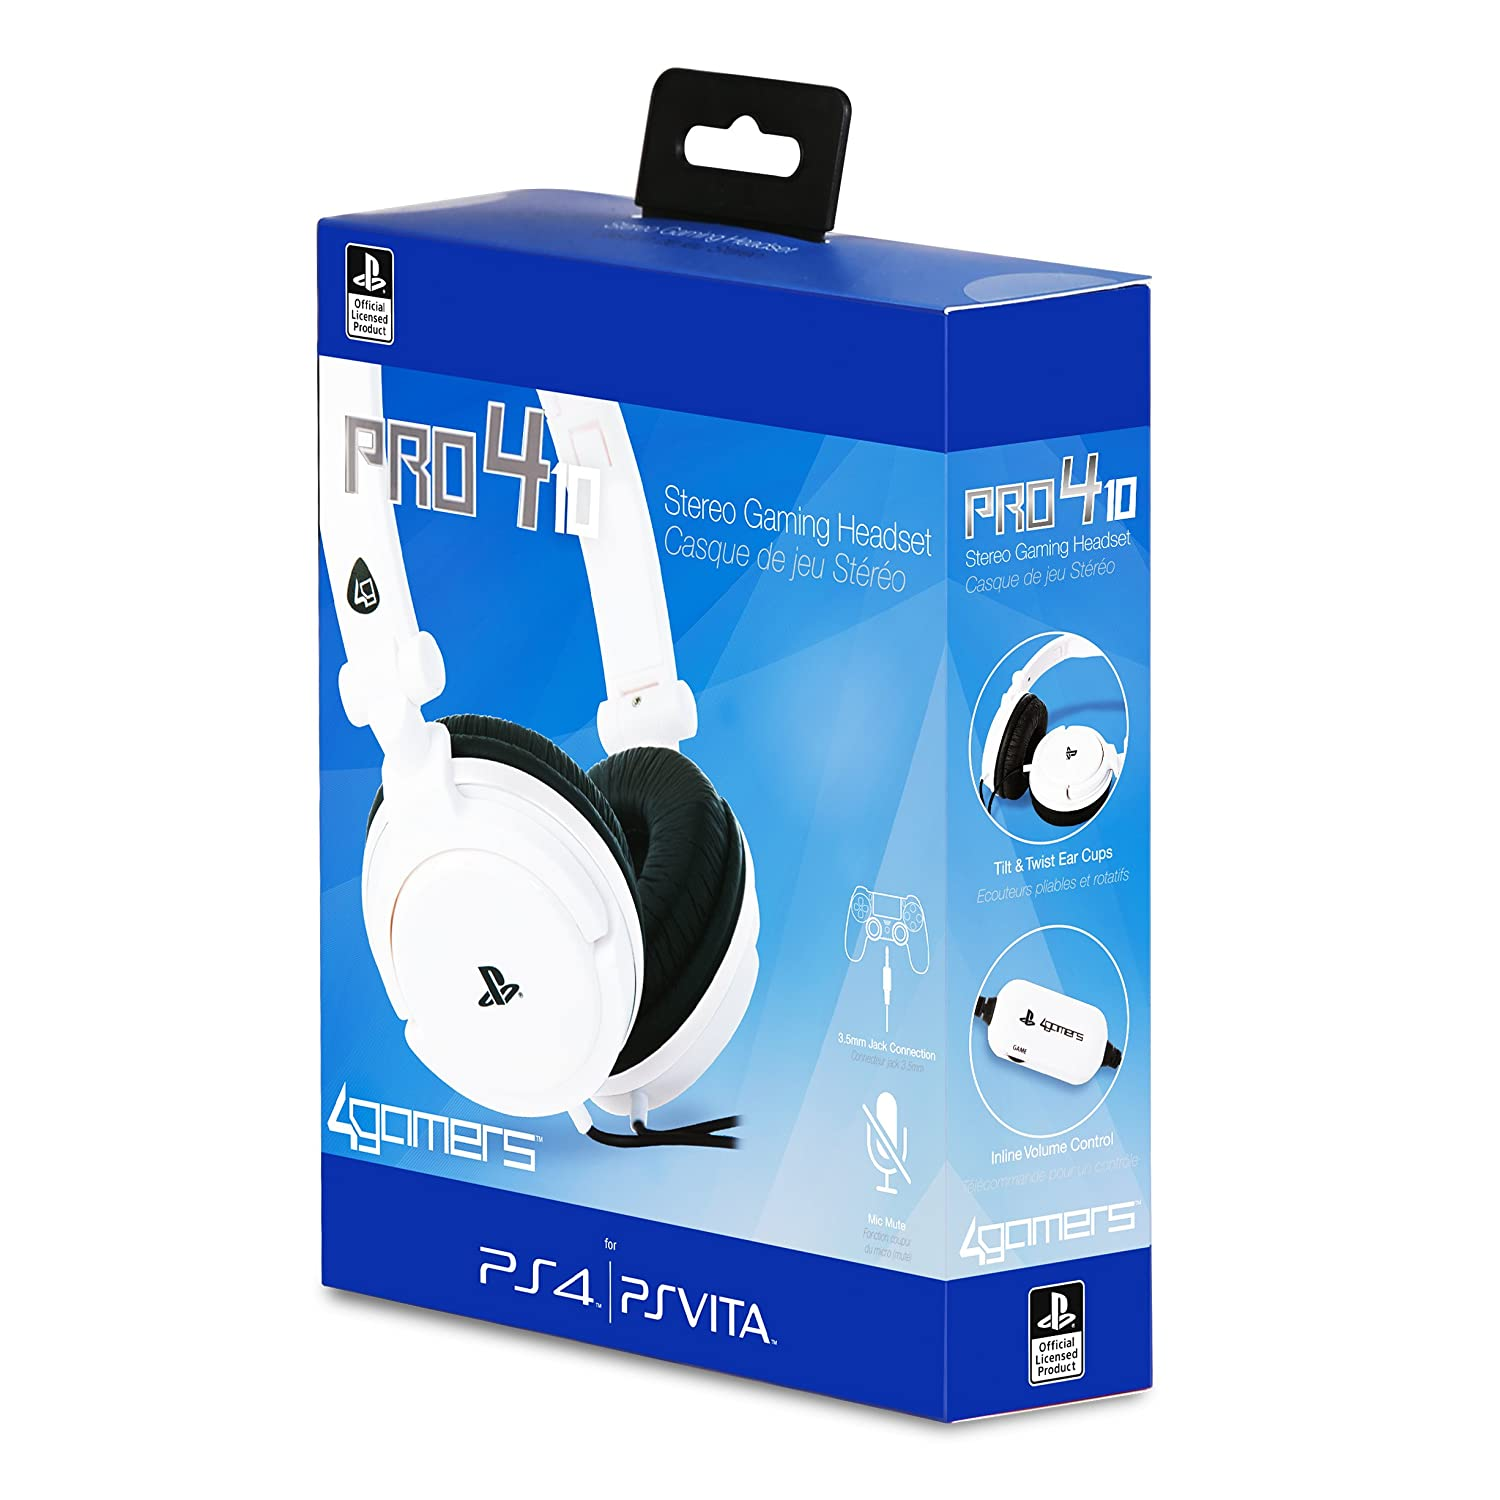 Amazon.com: Licensed Ps4 4-10 Pro Stereo Gaming Headset ...